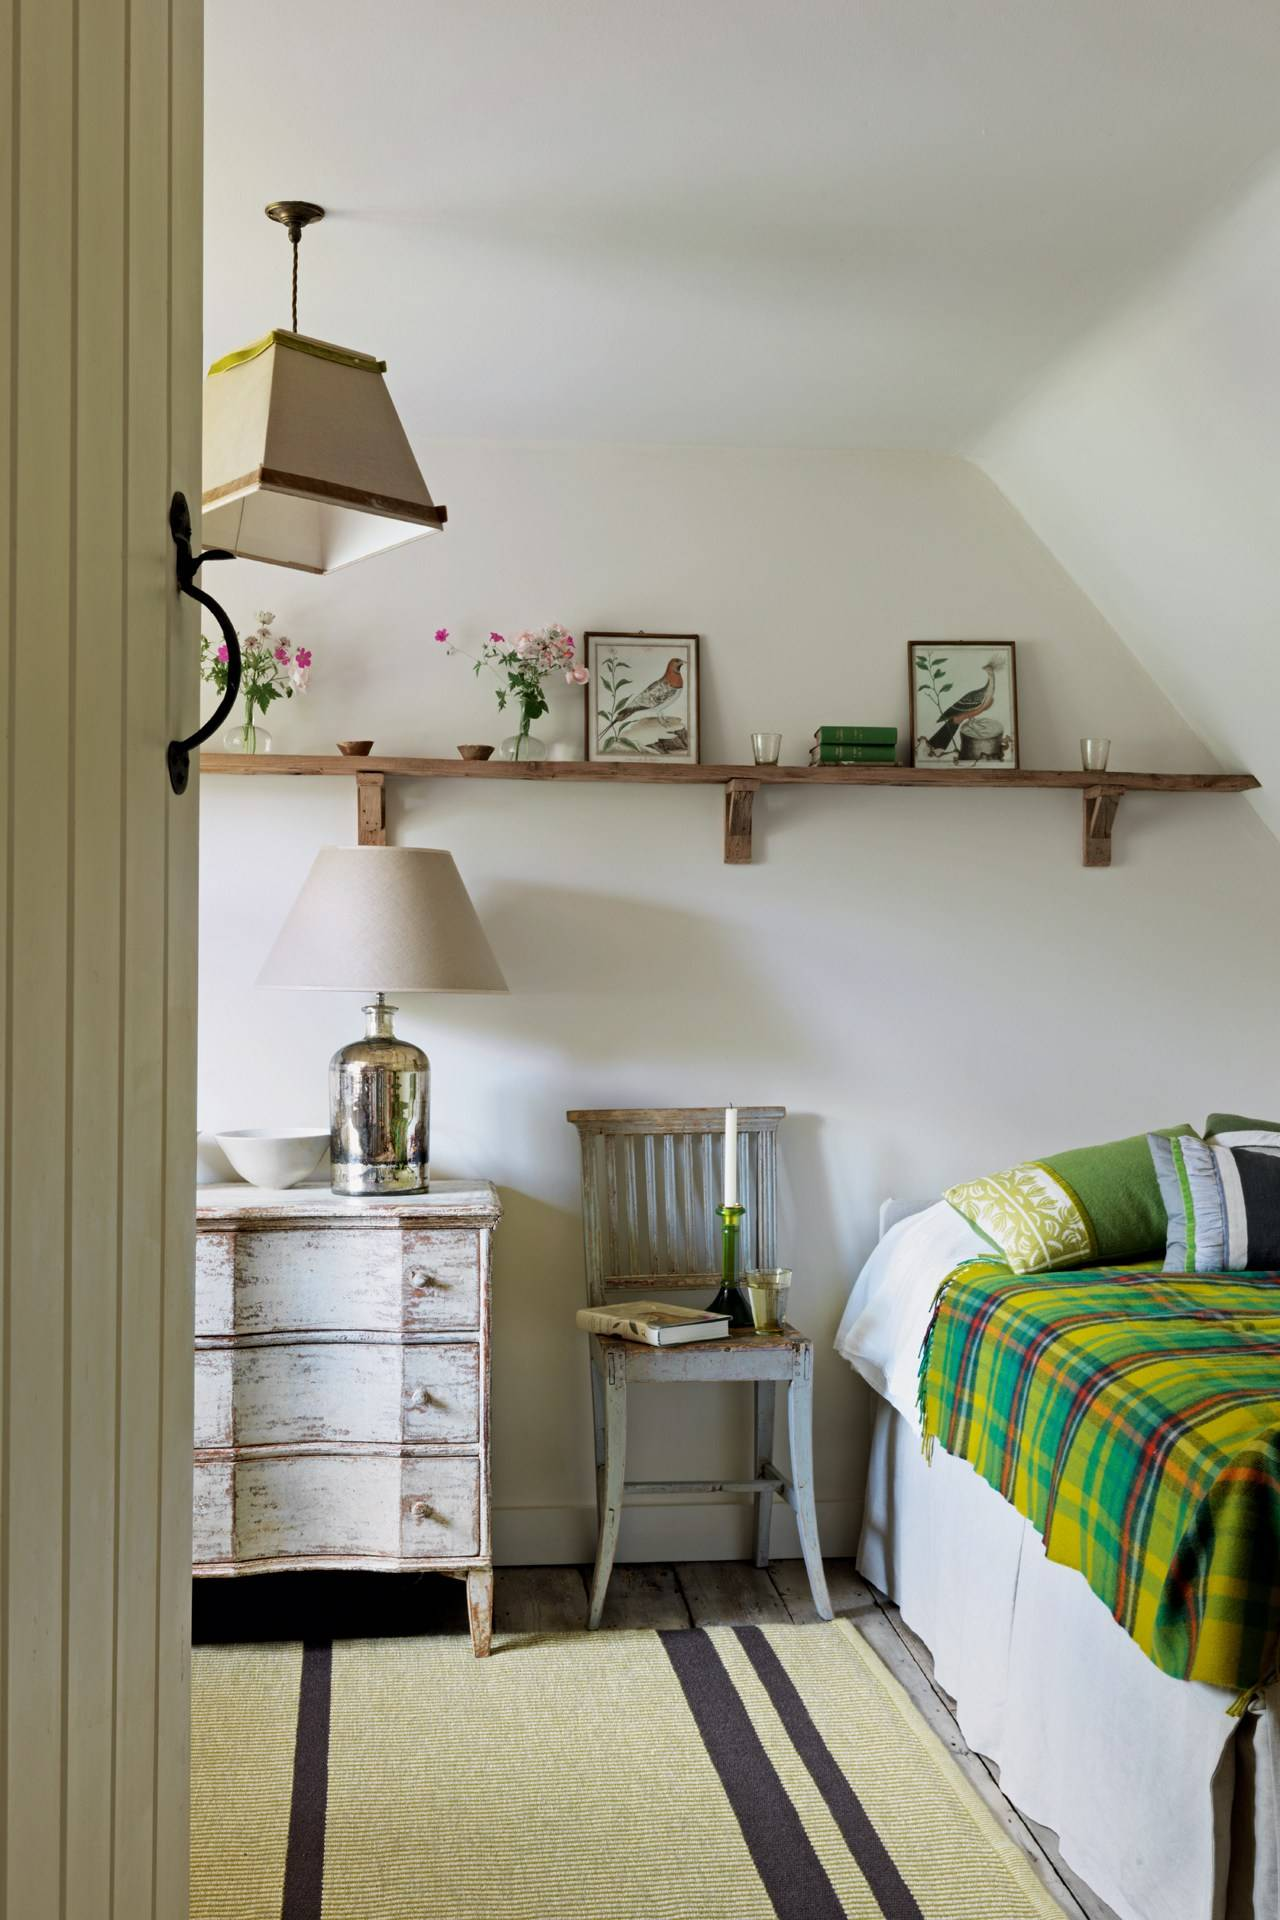 Small Cottage Bedroom - Small Space Ideas  House & Garden